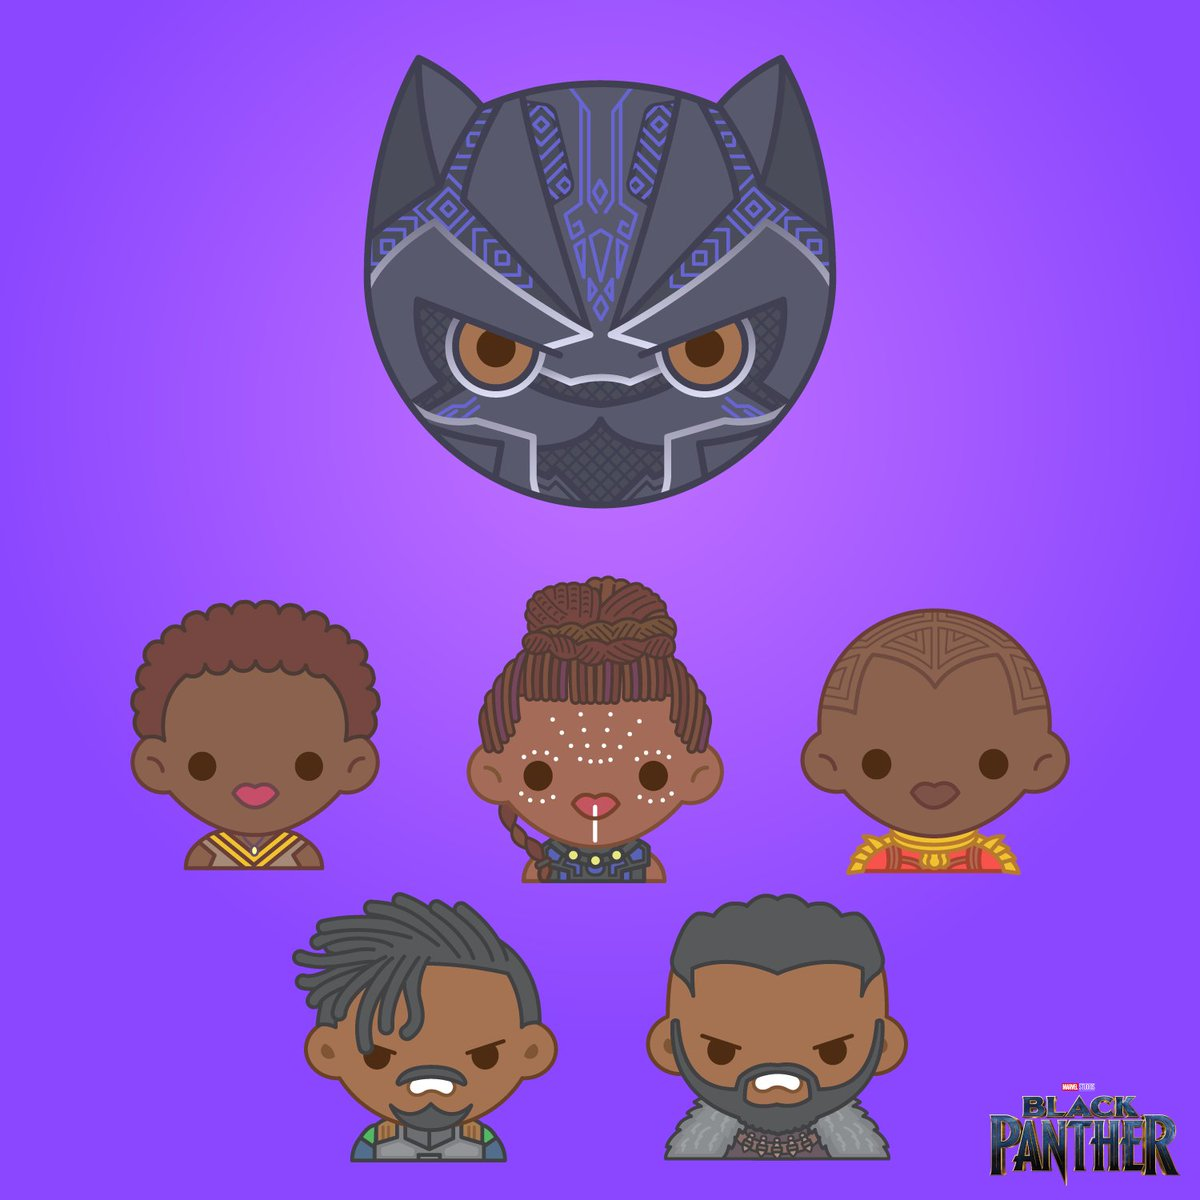 100 Soft ᴗ On Twitter Congrats To Blackpanther For A Historic Opening It S Also Been Pretty Amazing Seeing Everyone Use The Emojis I Made All Weekend Nakia Okoye Killmonger Shuri